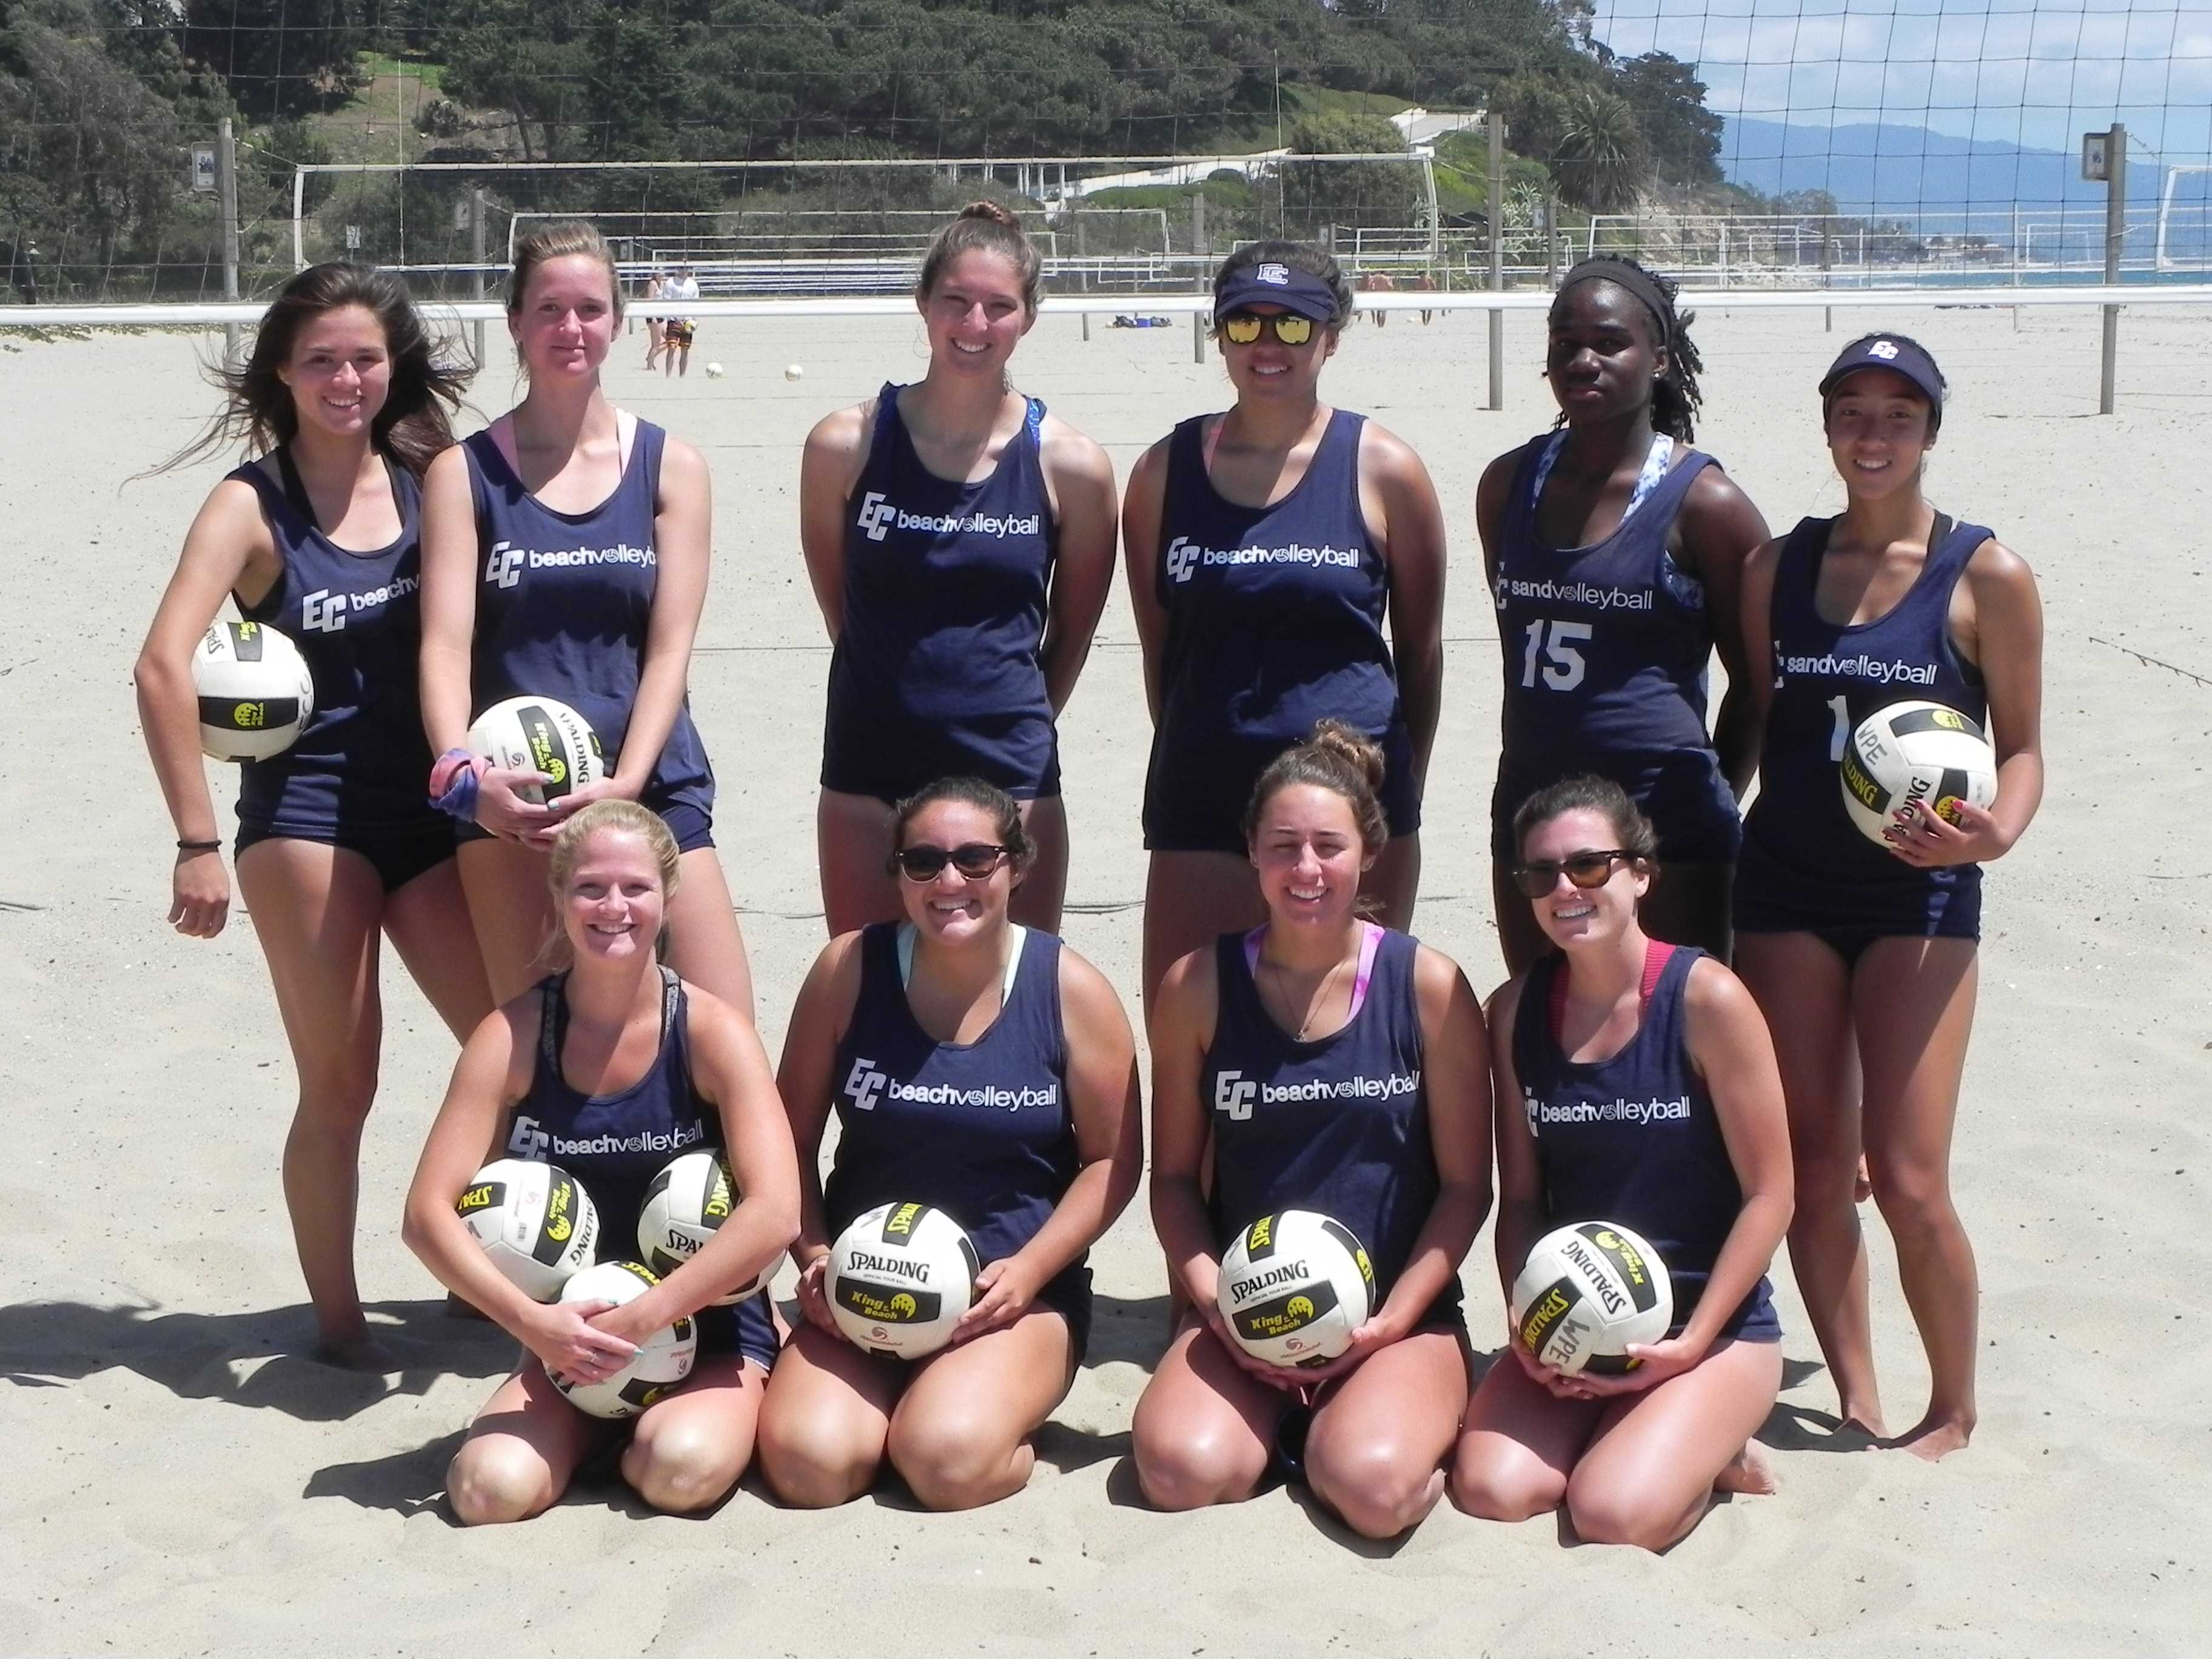 Up next for the beach volleyball team: EC will host first round of individual playoffs